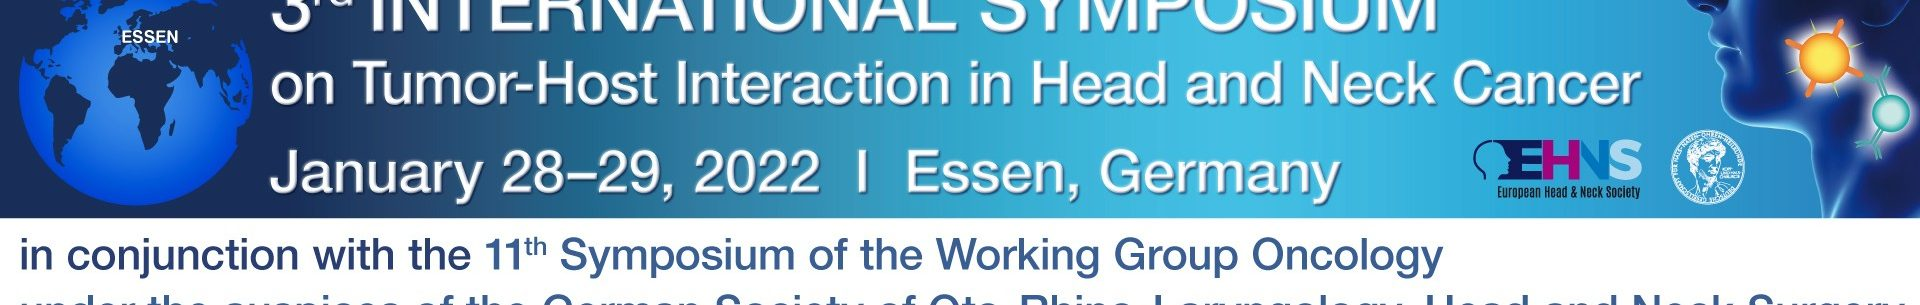 3rd International Symposium on Tumor-Host Interaction in Head and Neck Cancer